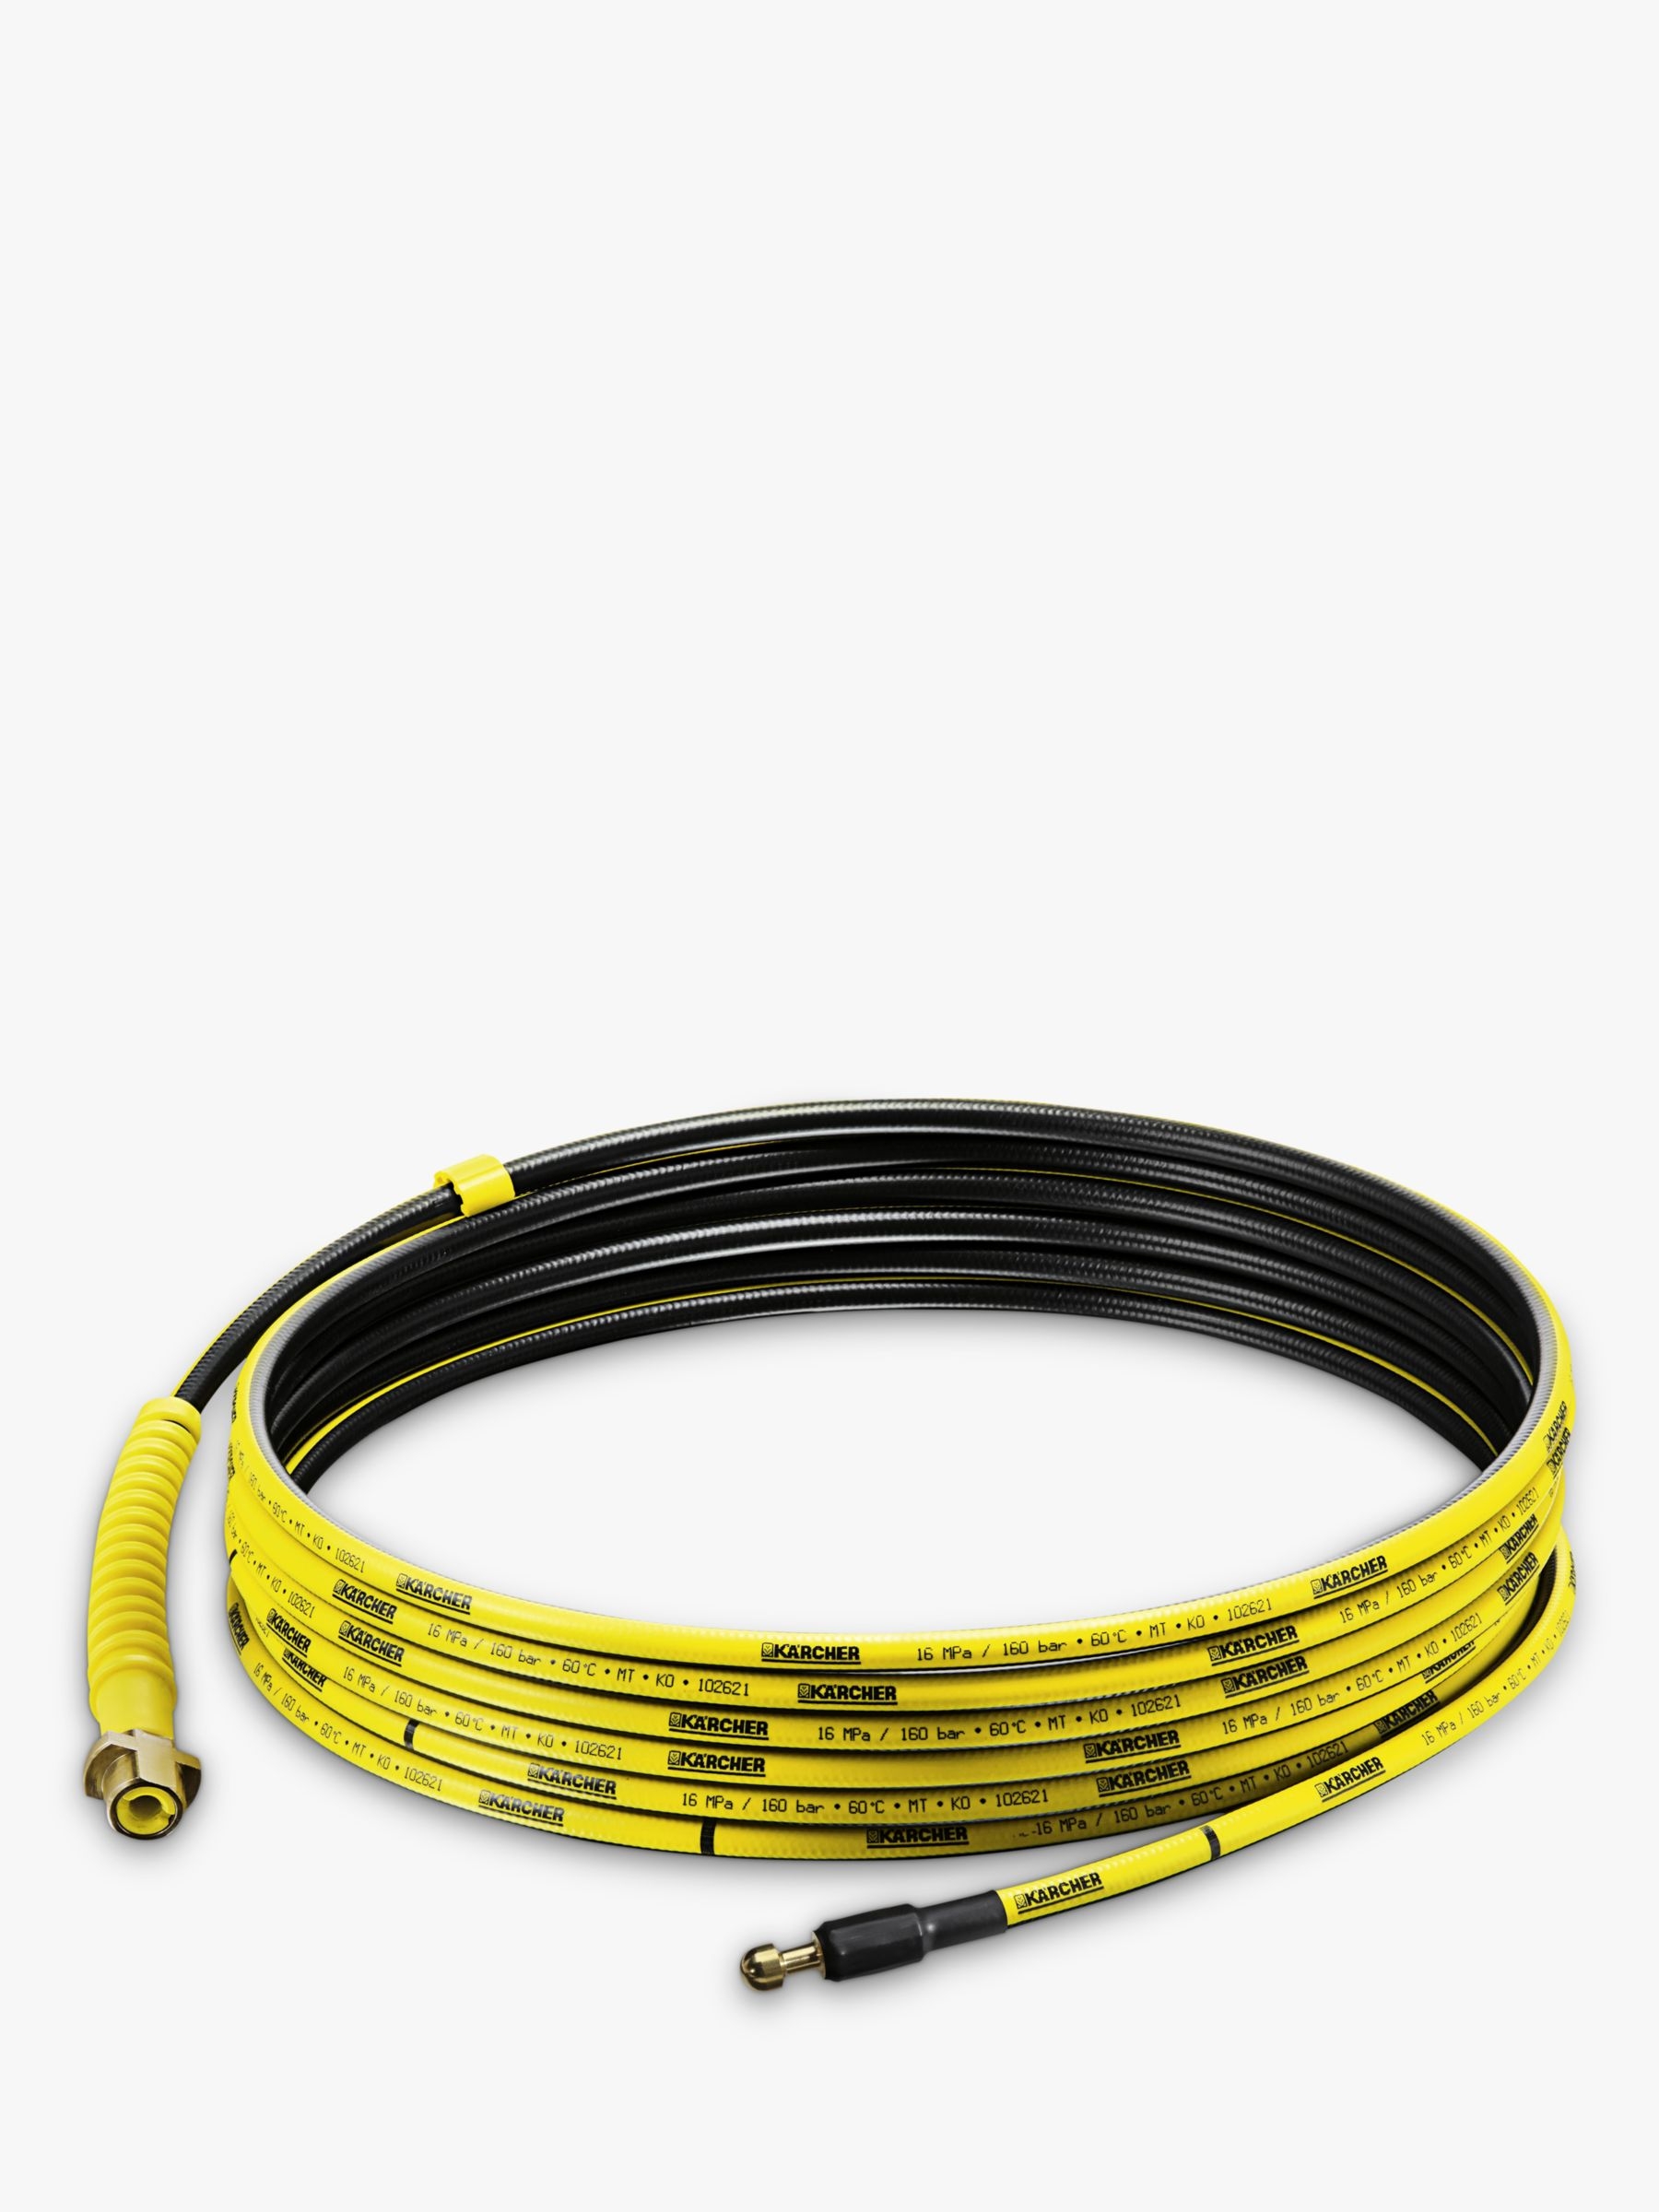 Karcher Kärcher 7.5m Pipe and Drain Cleaning Kit